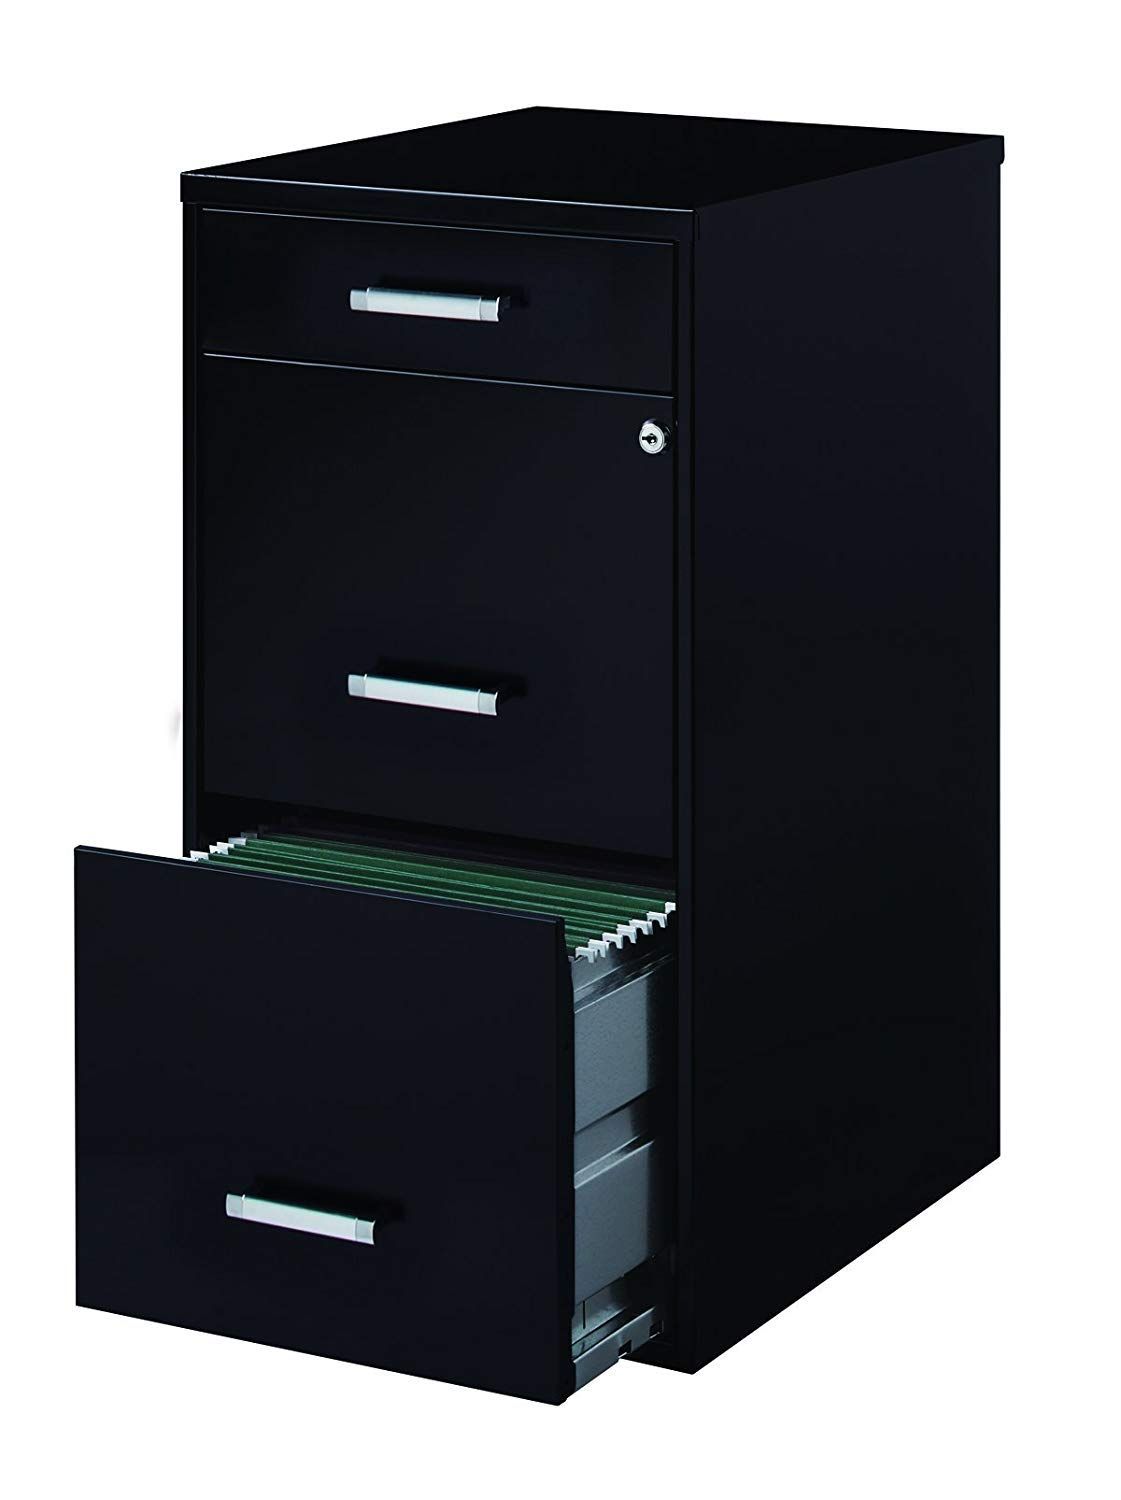 Office Dimensions 18'' Deep 3 Drawer Metal File Cabinet Organizer with Pencil Drawer, Black (4 Units) by Office Dimensions (Image #1)